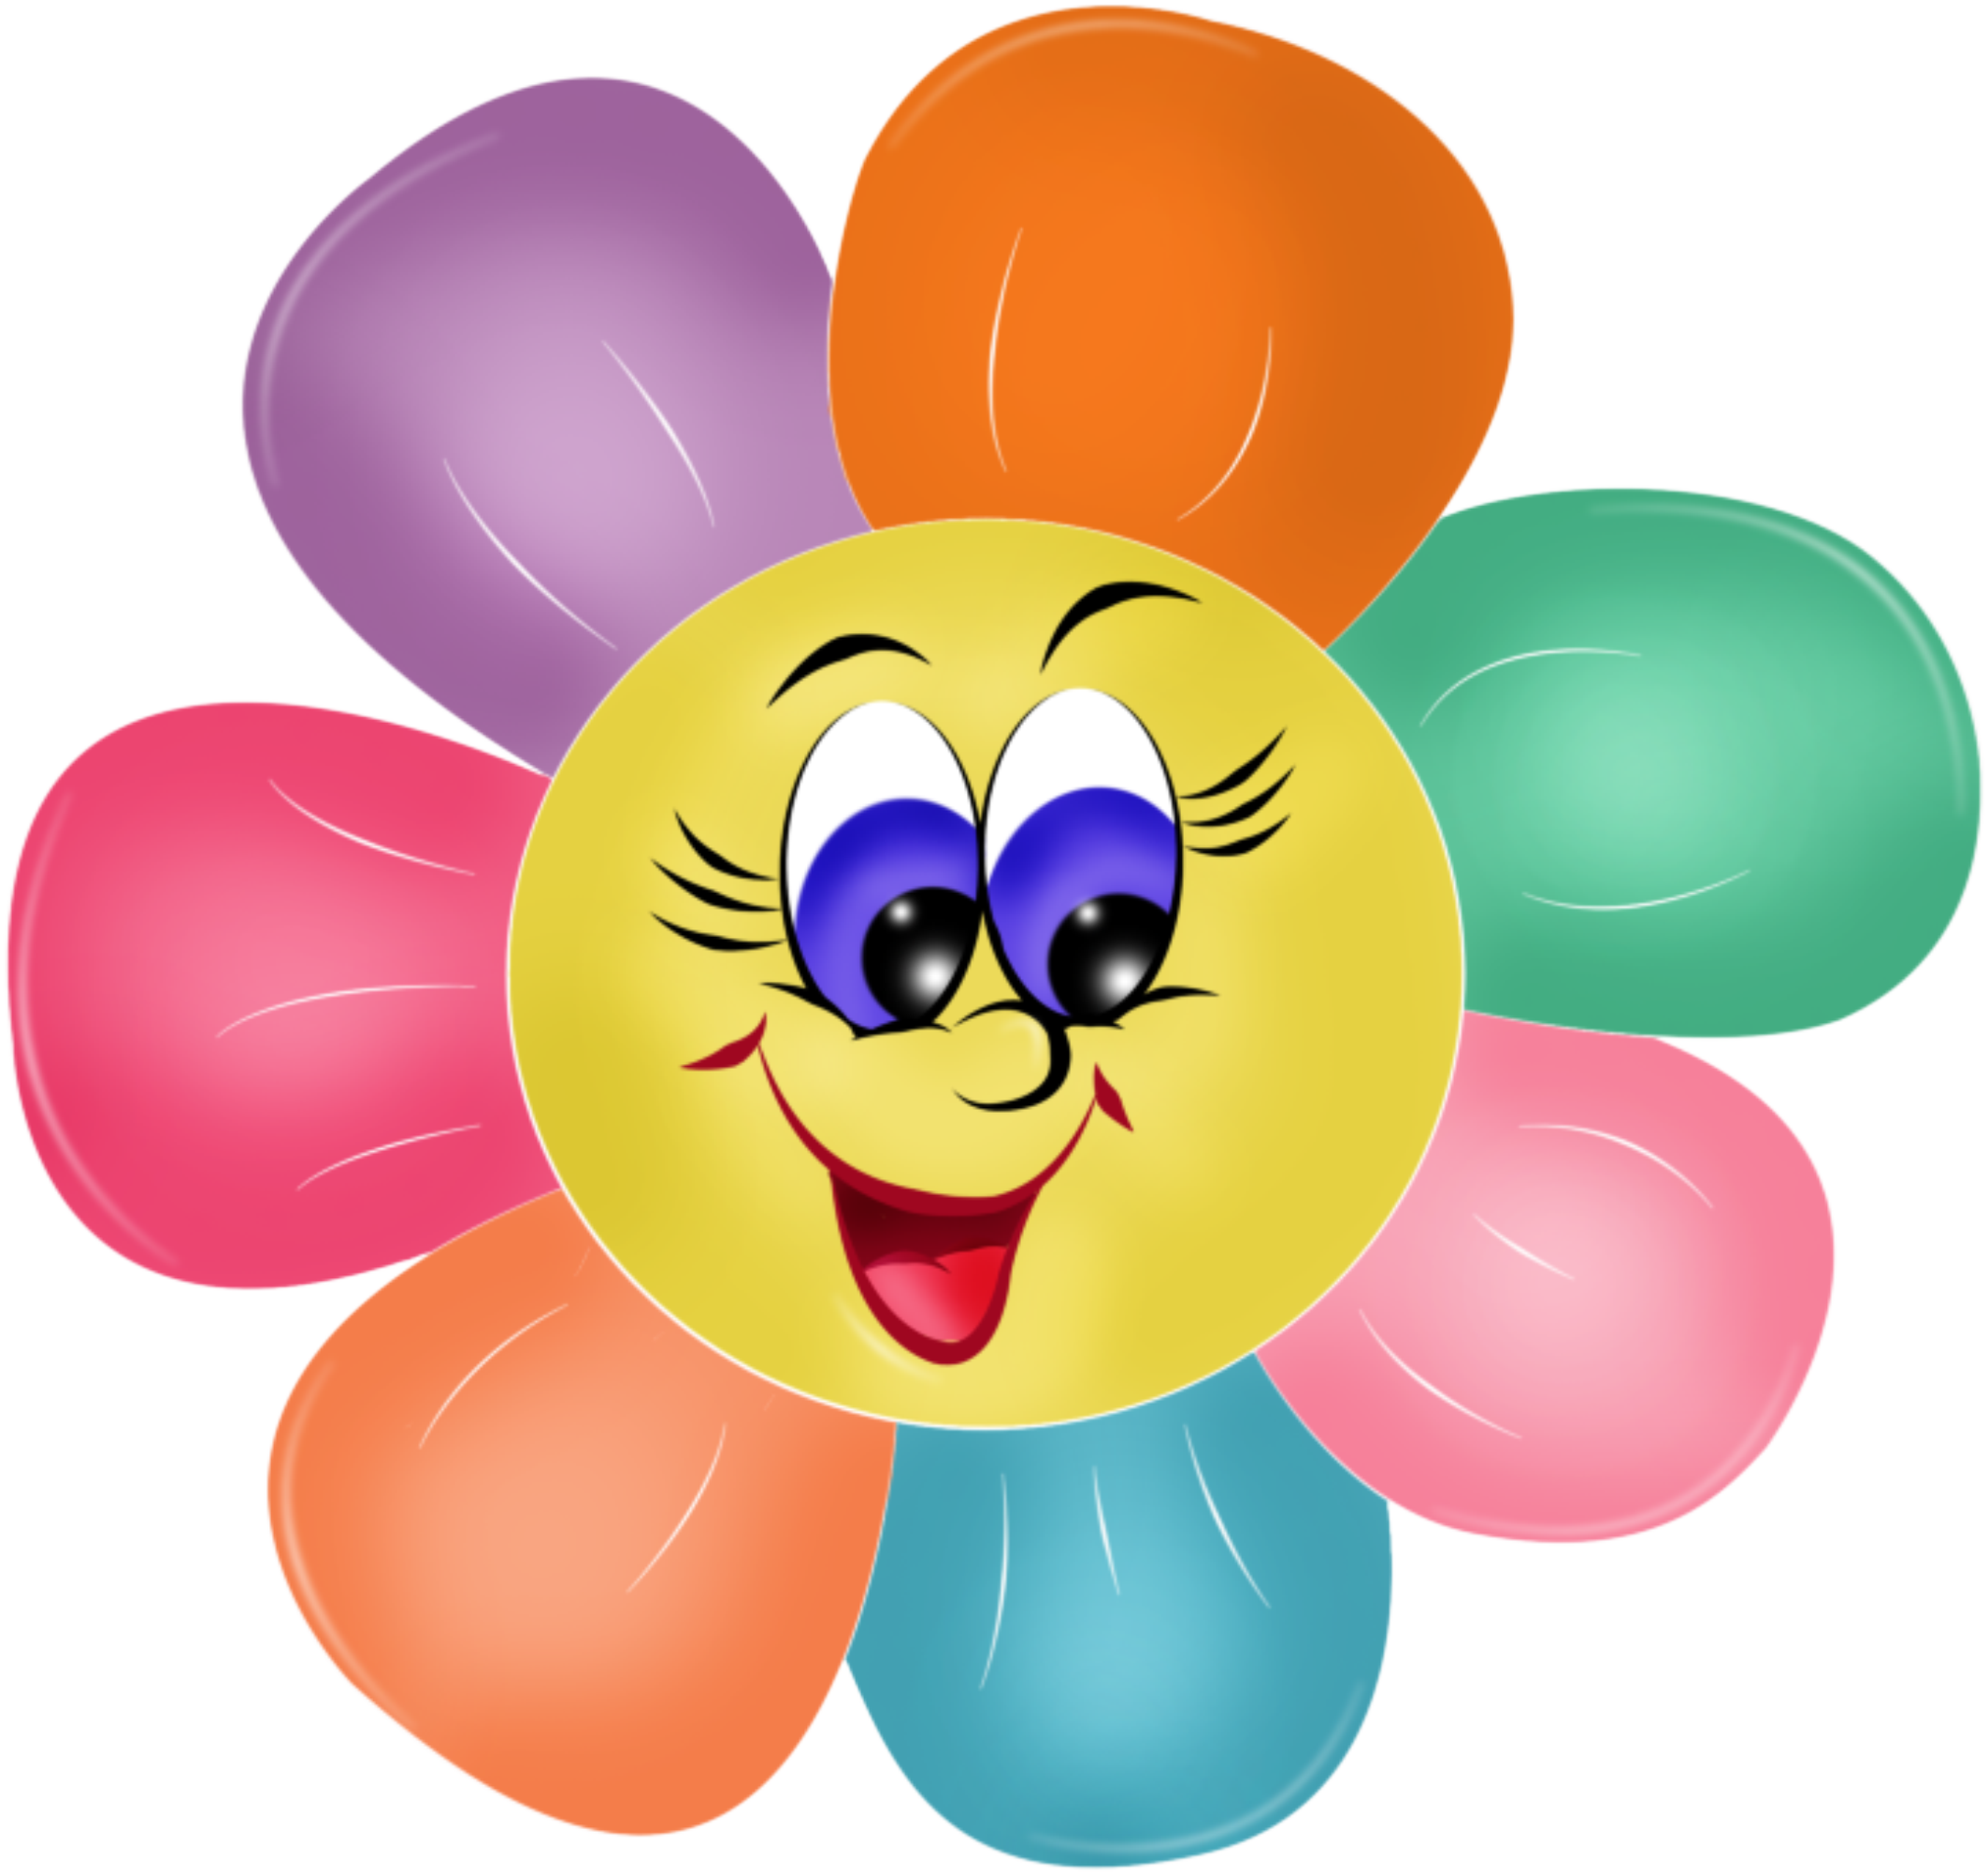 Smiley face clip art flower. Azbuka png klipart pinterest